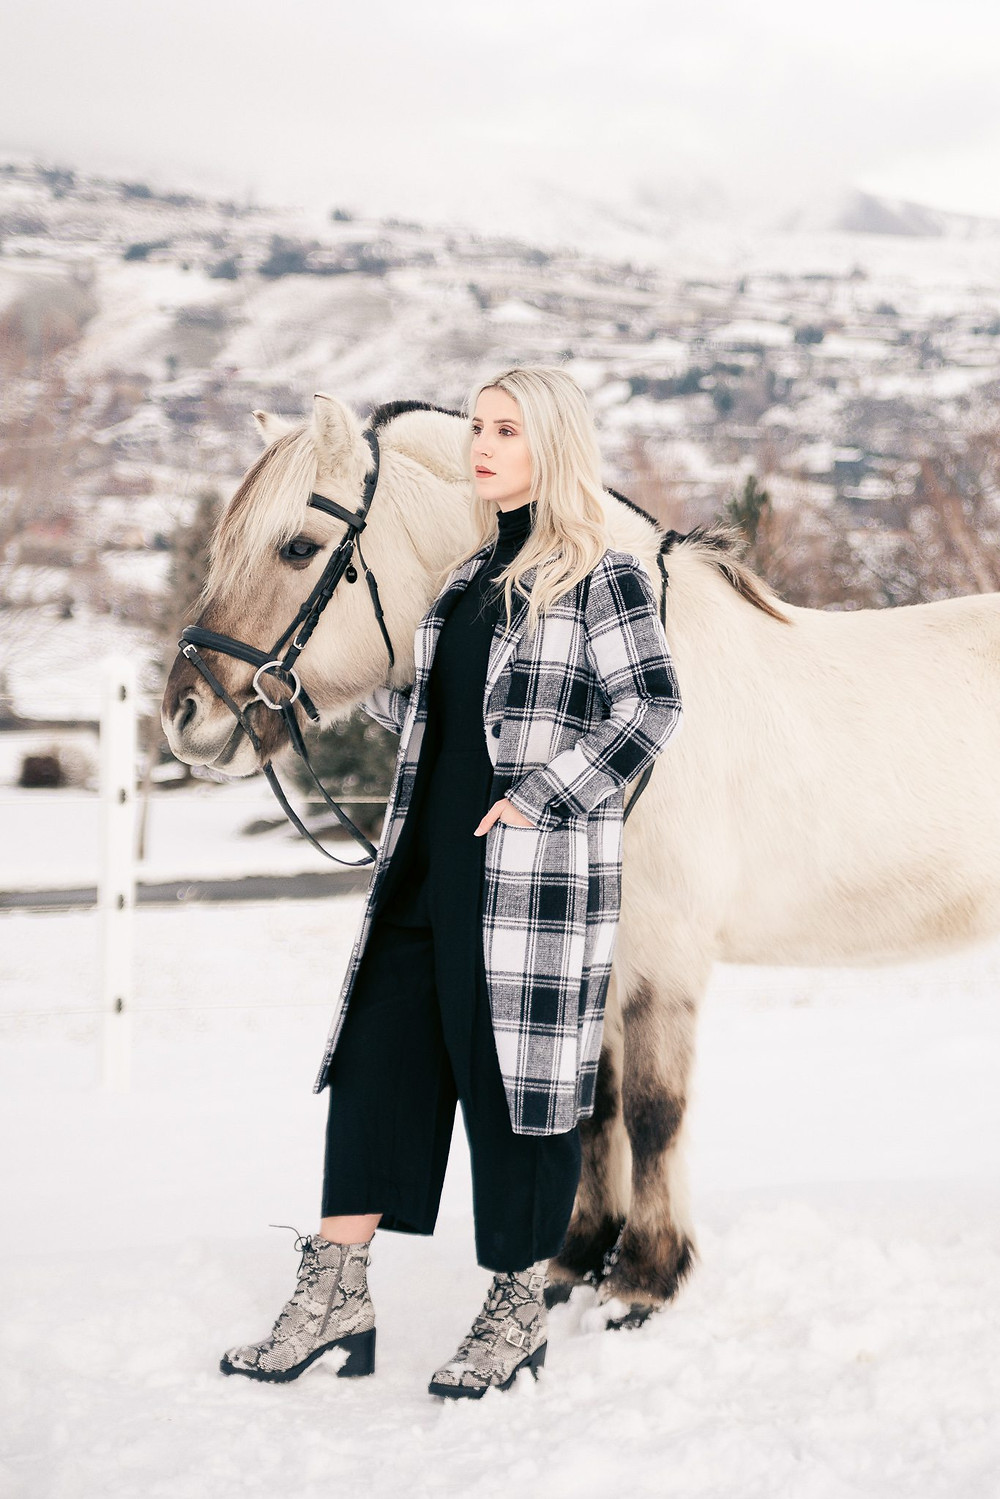 A girl standing next to her horse, looking off into the distance in the snow